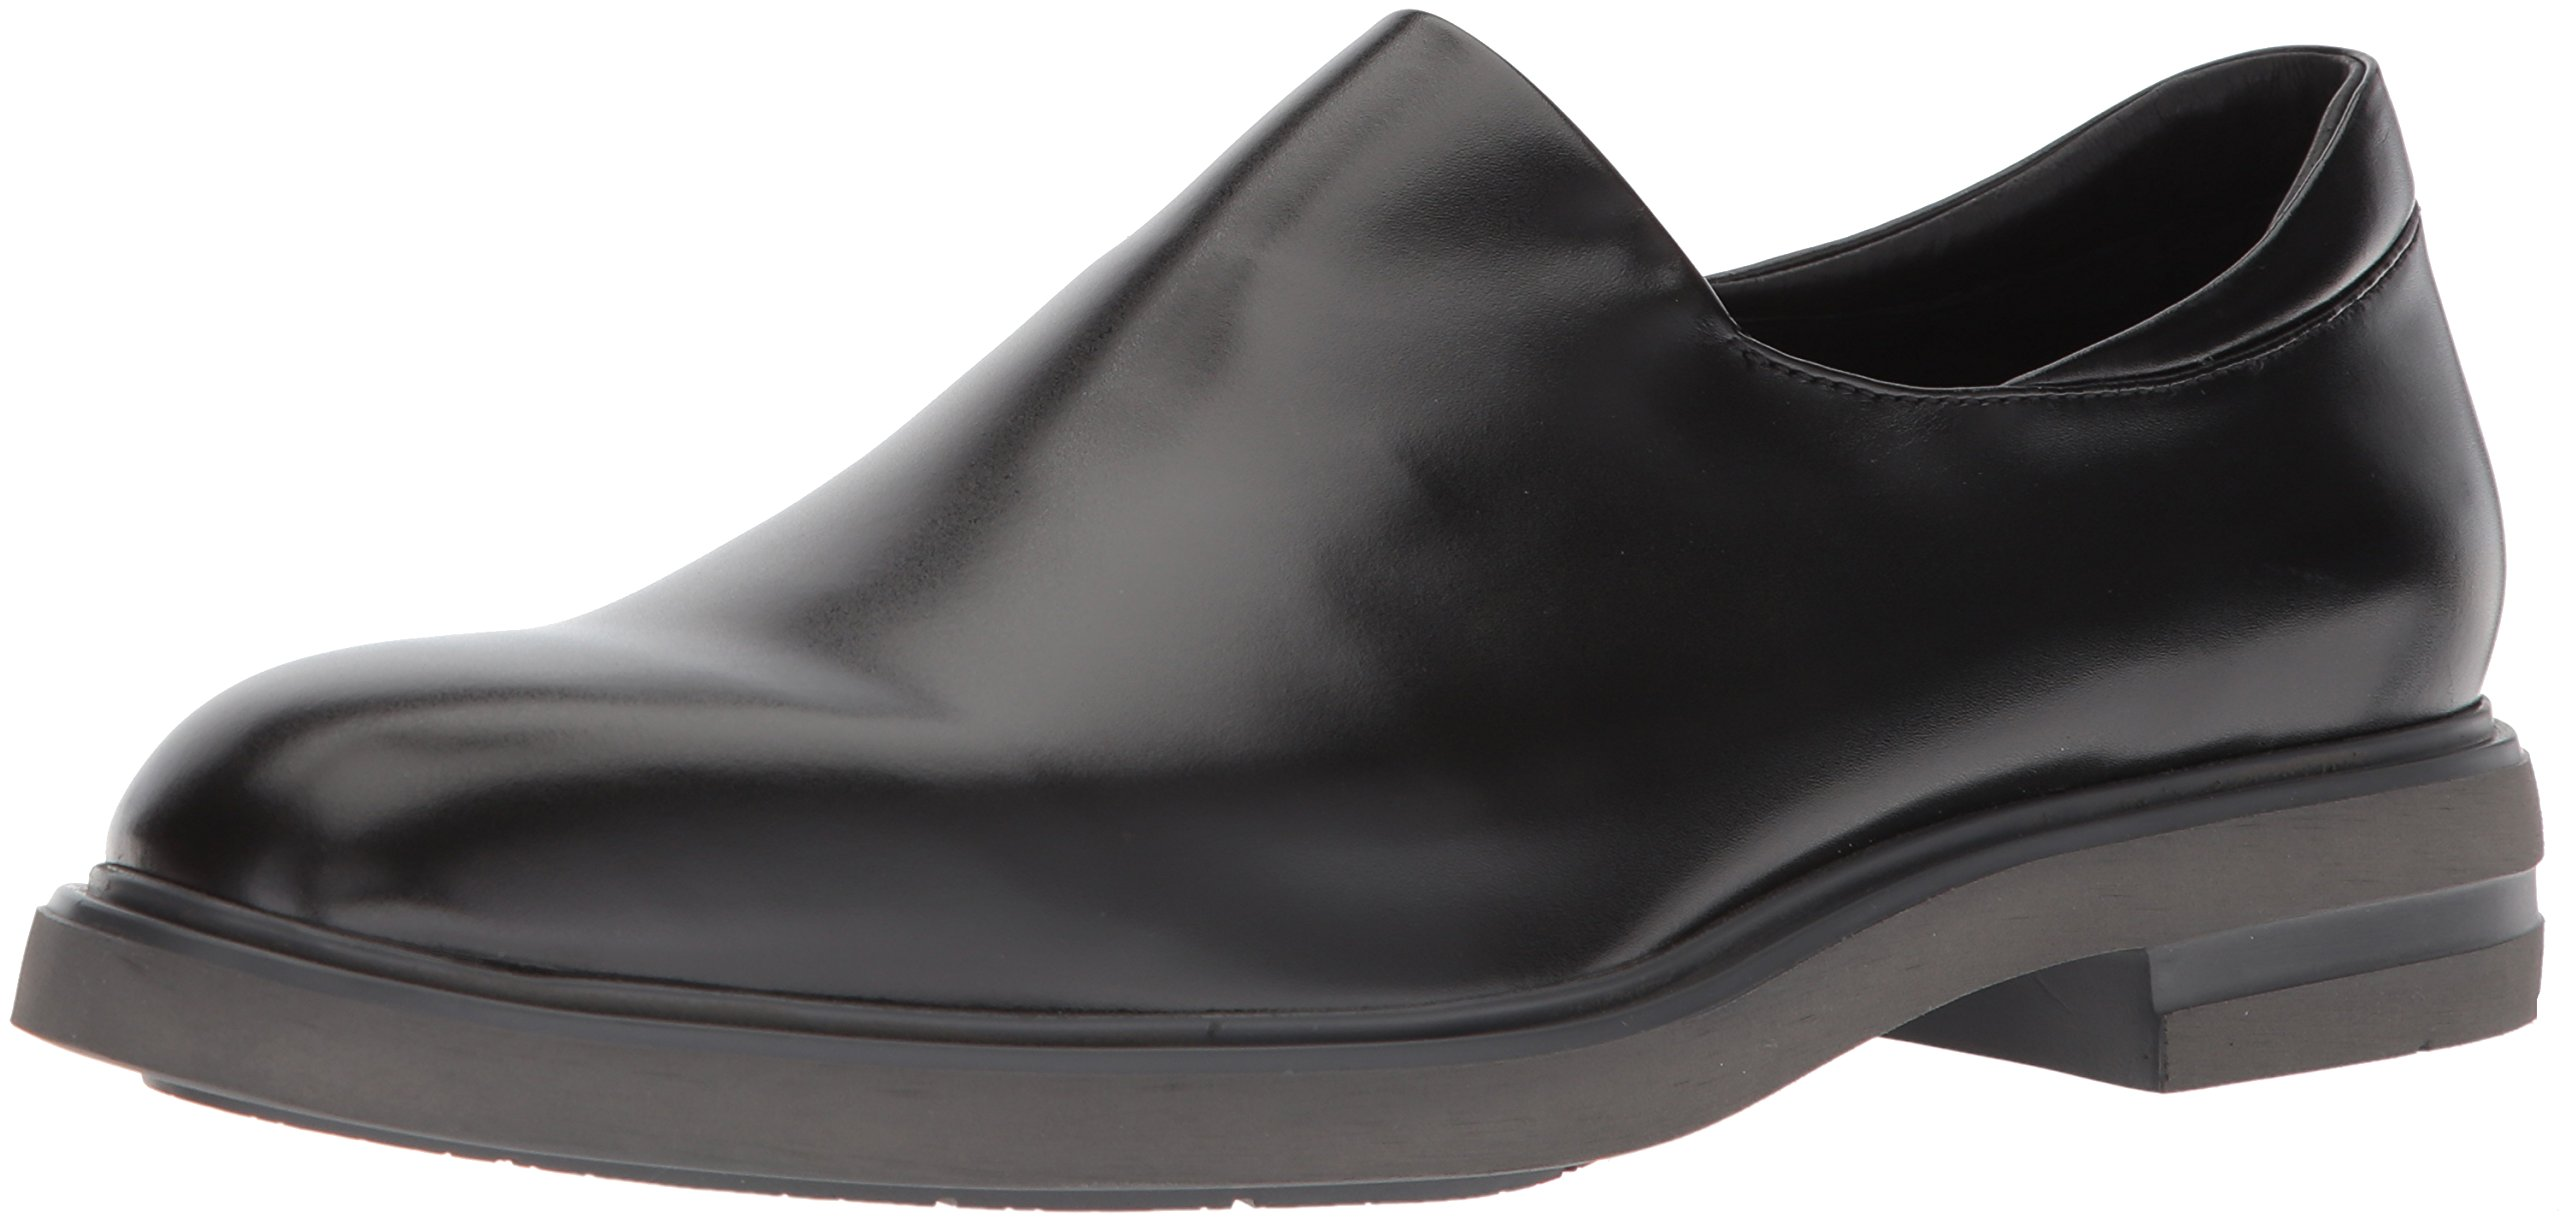 Donald J Pliner Men's Eliam Loafer, Black_1, 7 Medium US